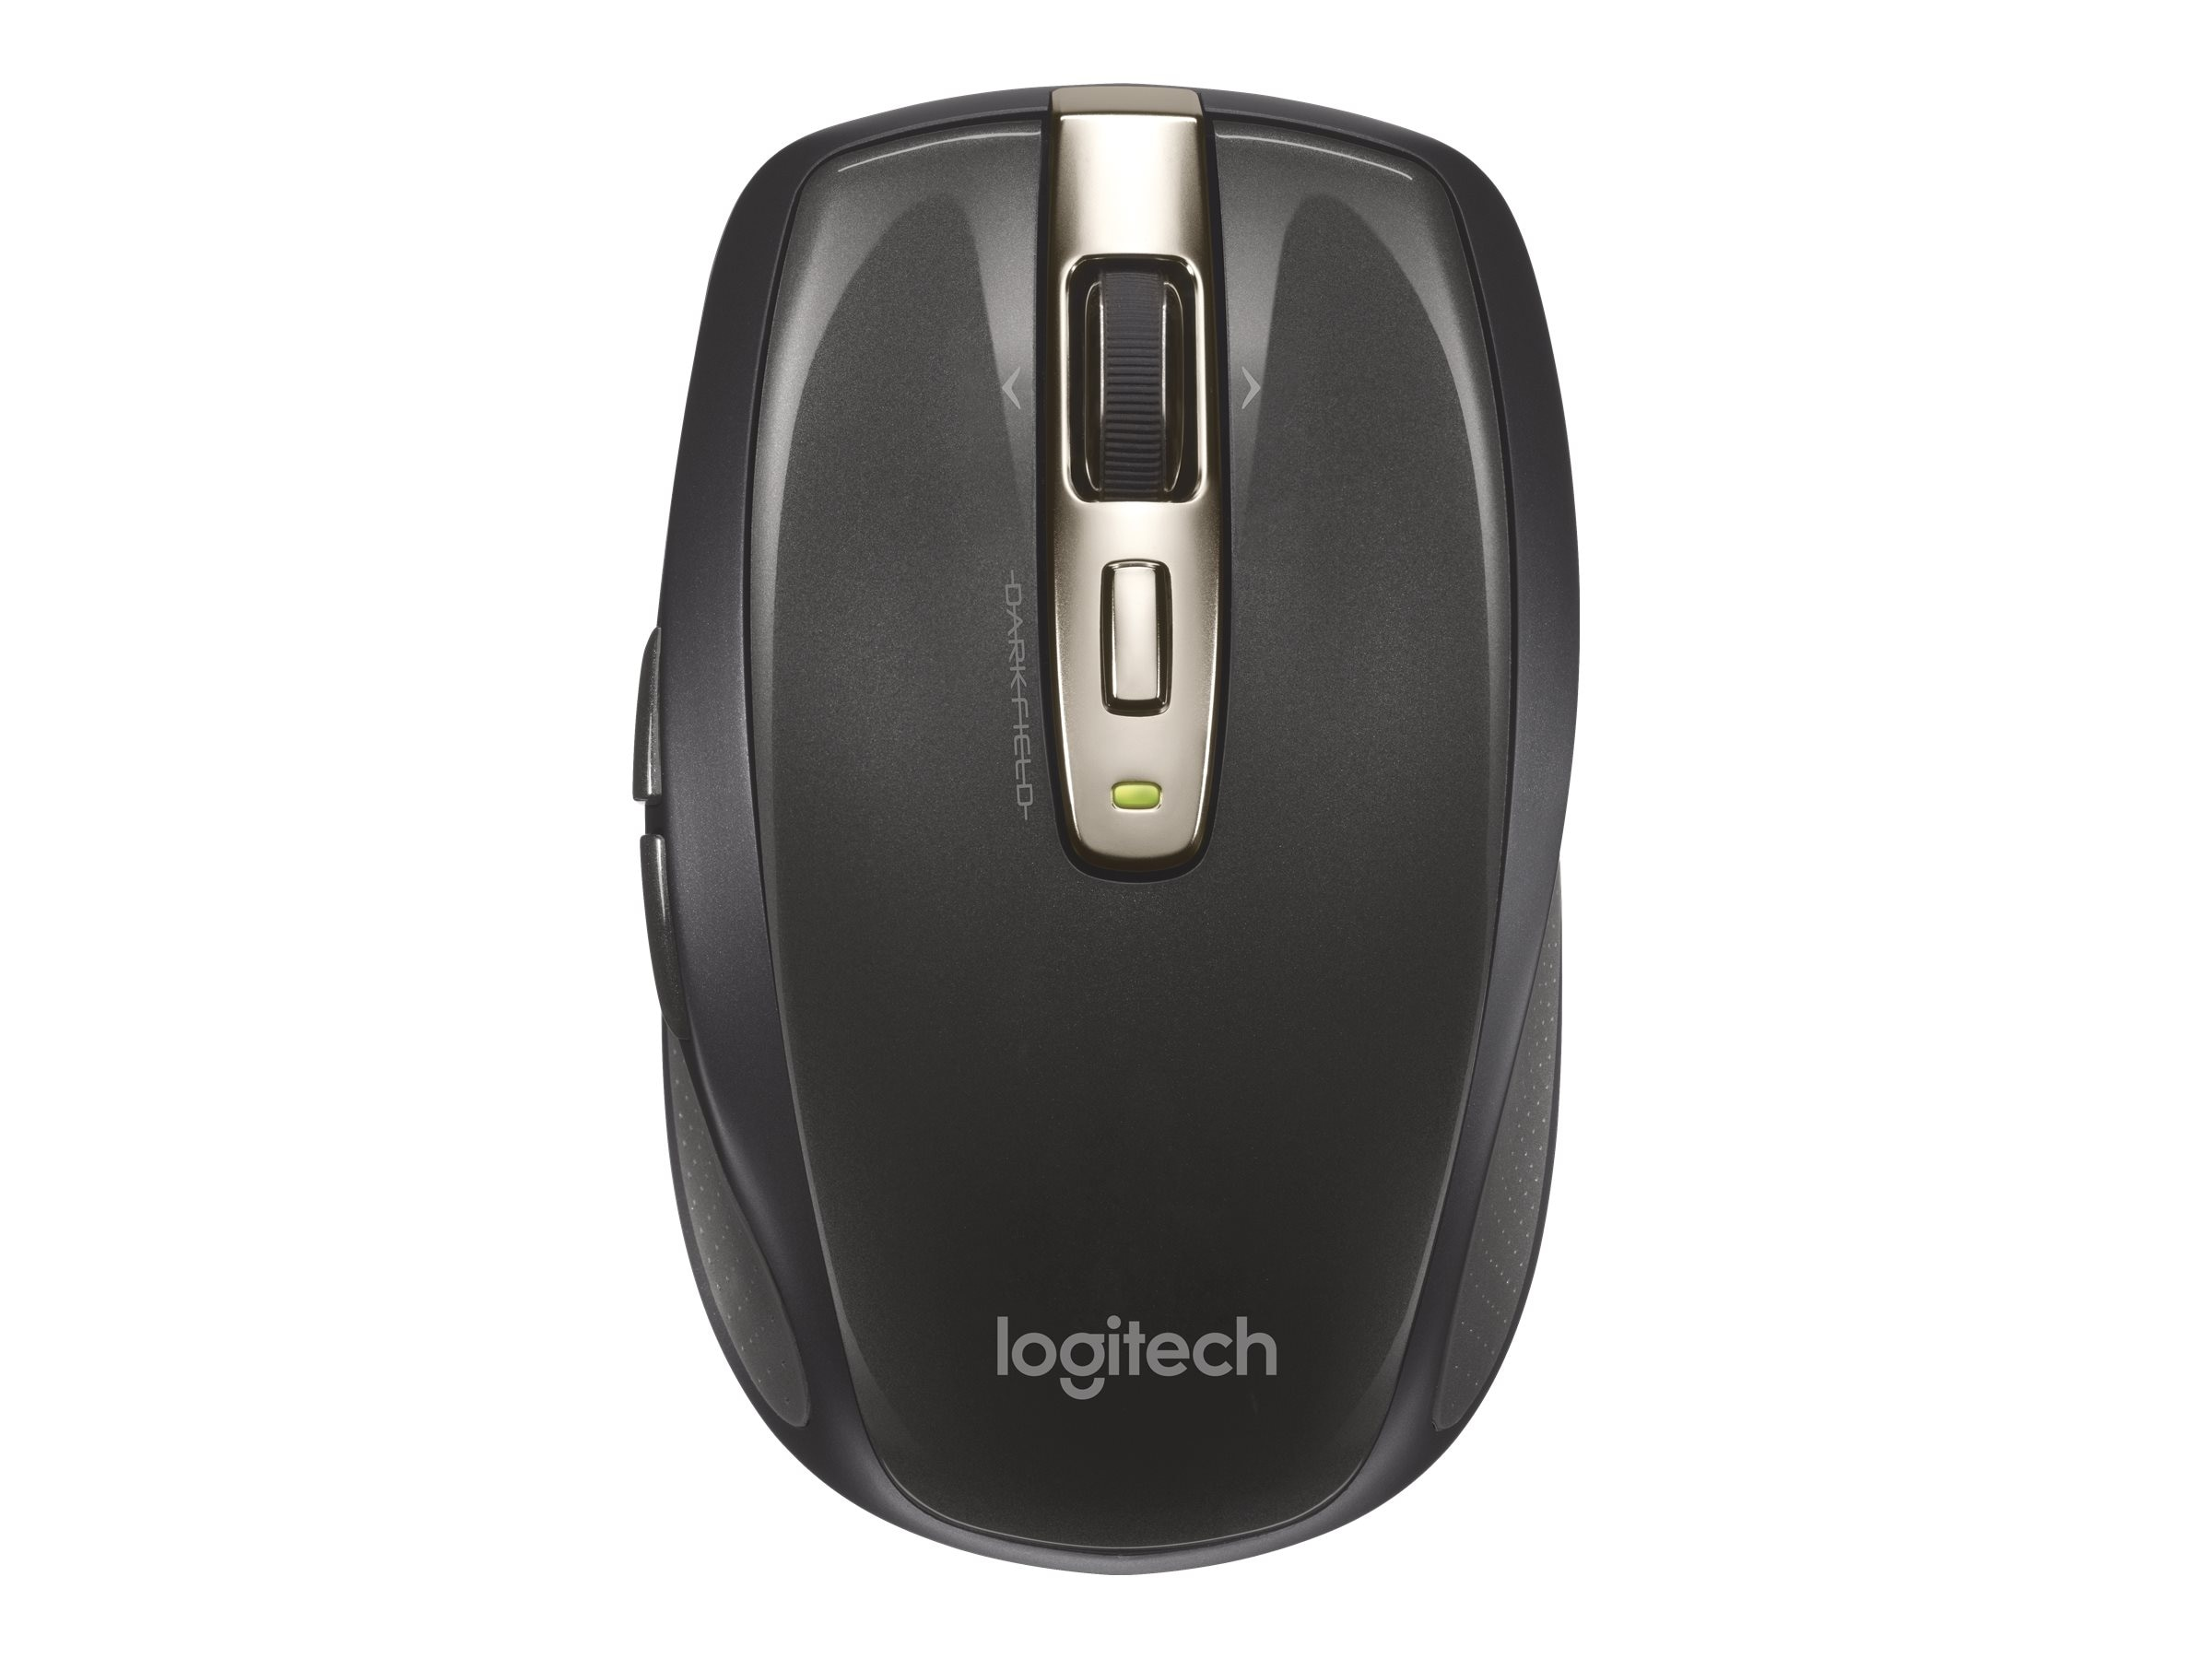 Logitech Anywhere Mobile Mouse MX, Long Range Wireless Mouse